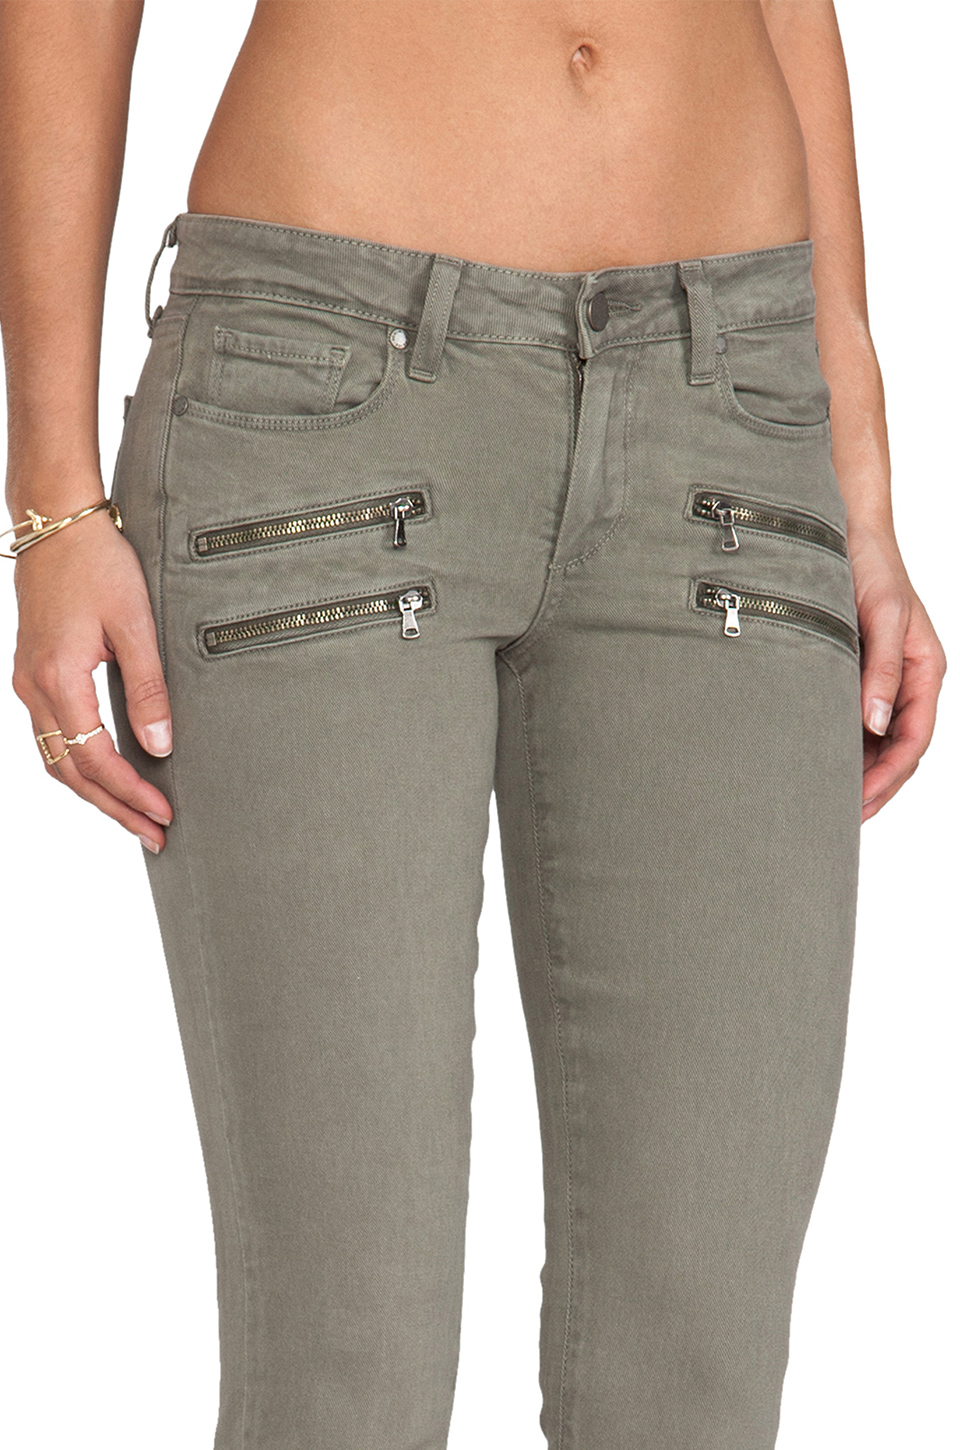 Lyst paige edgemont ultra skinny with zippers in fatigue for The edgemont